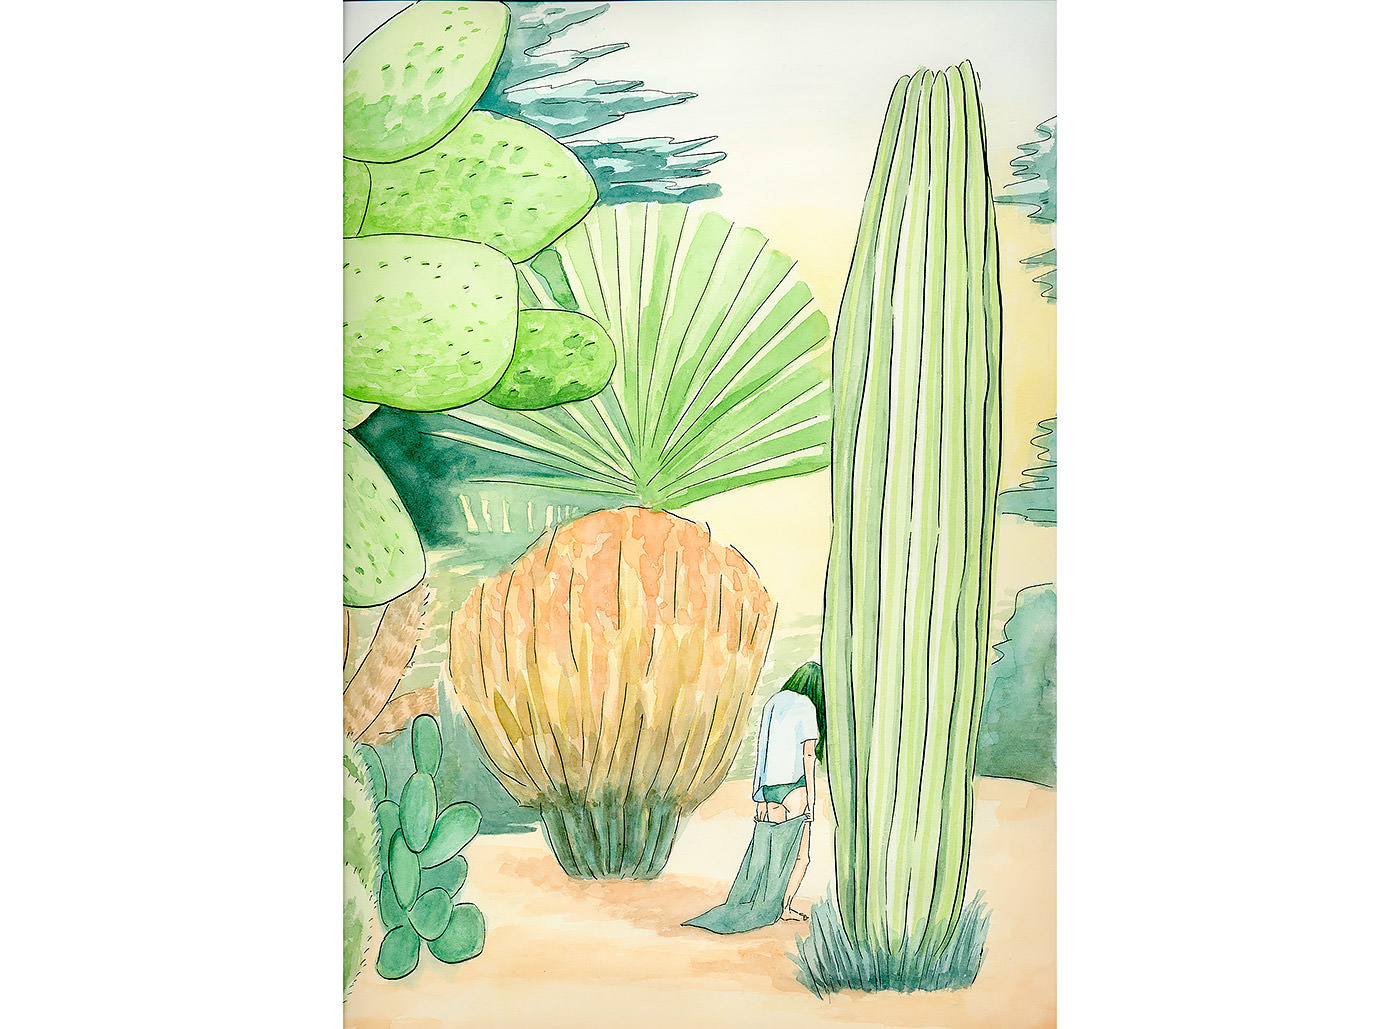 untitled, water color on paper, 384 mm × 267 mm, 2015